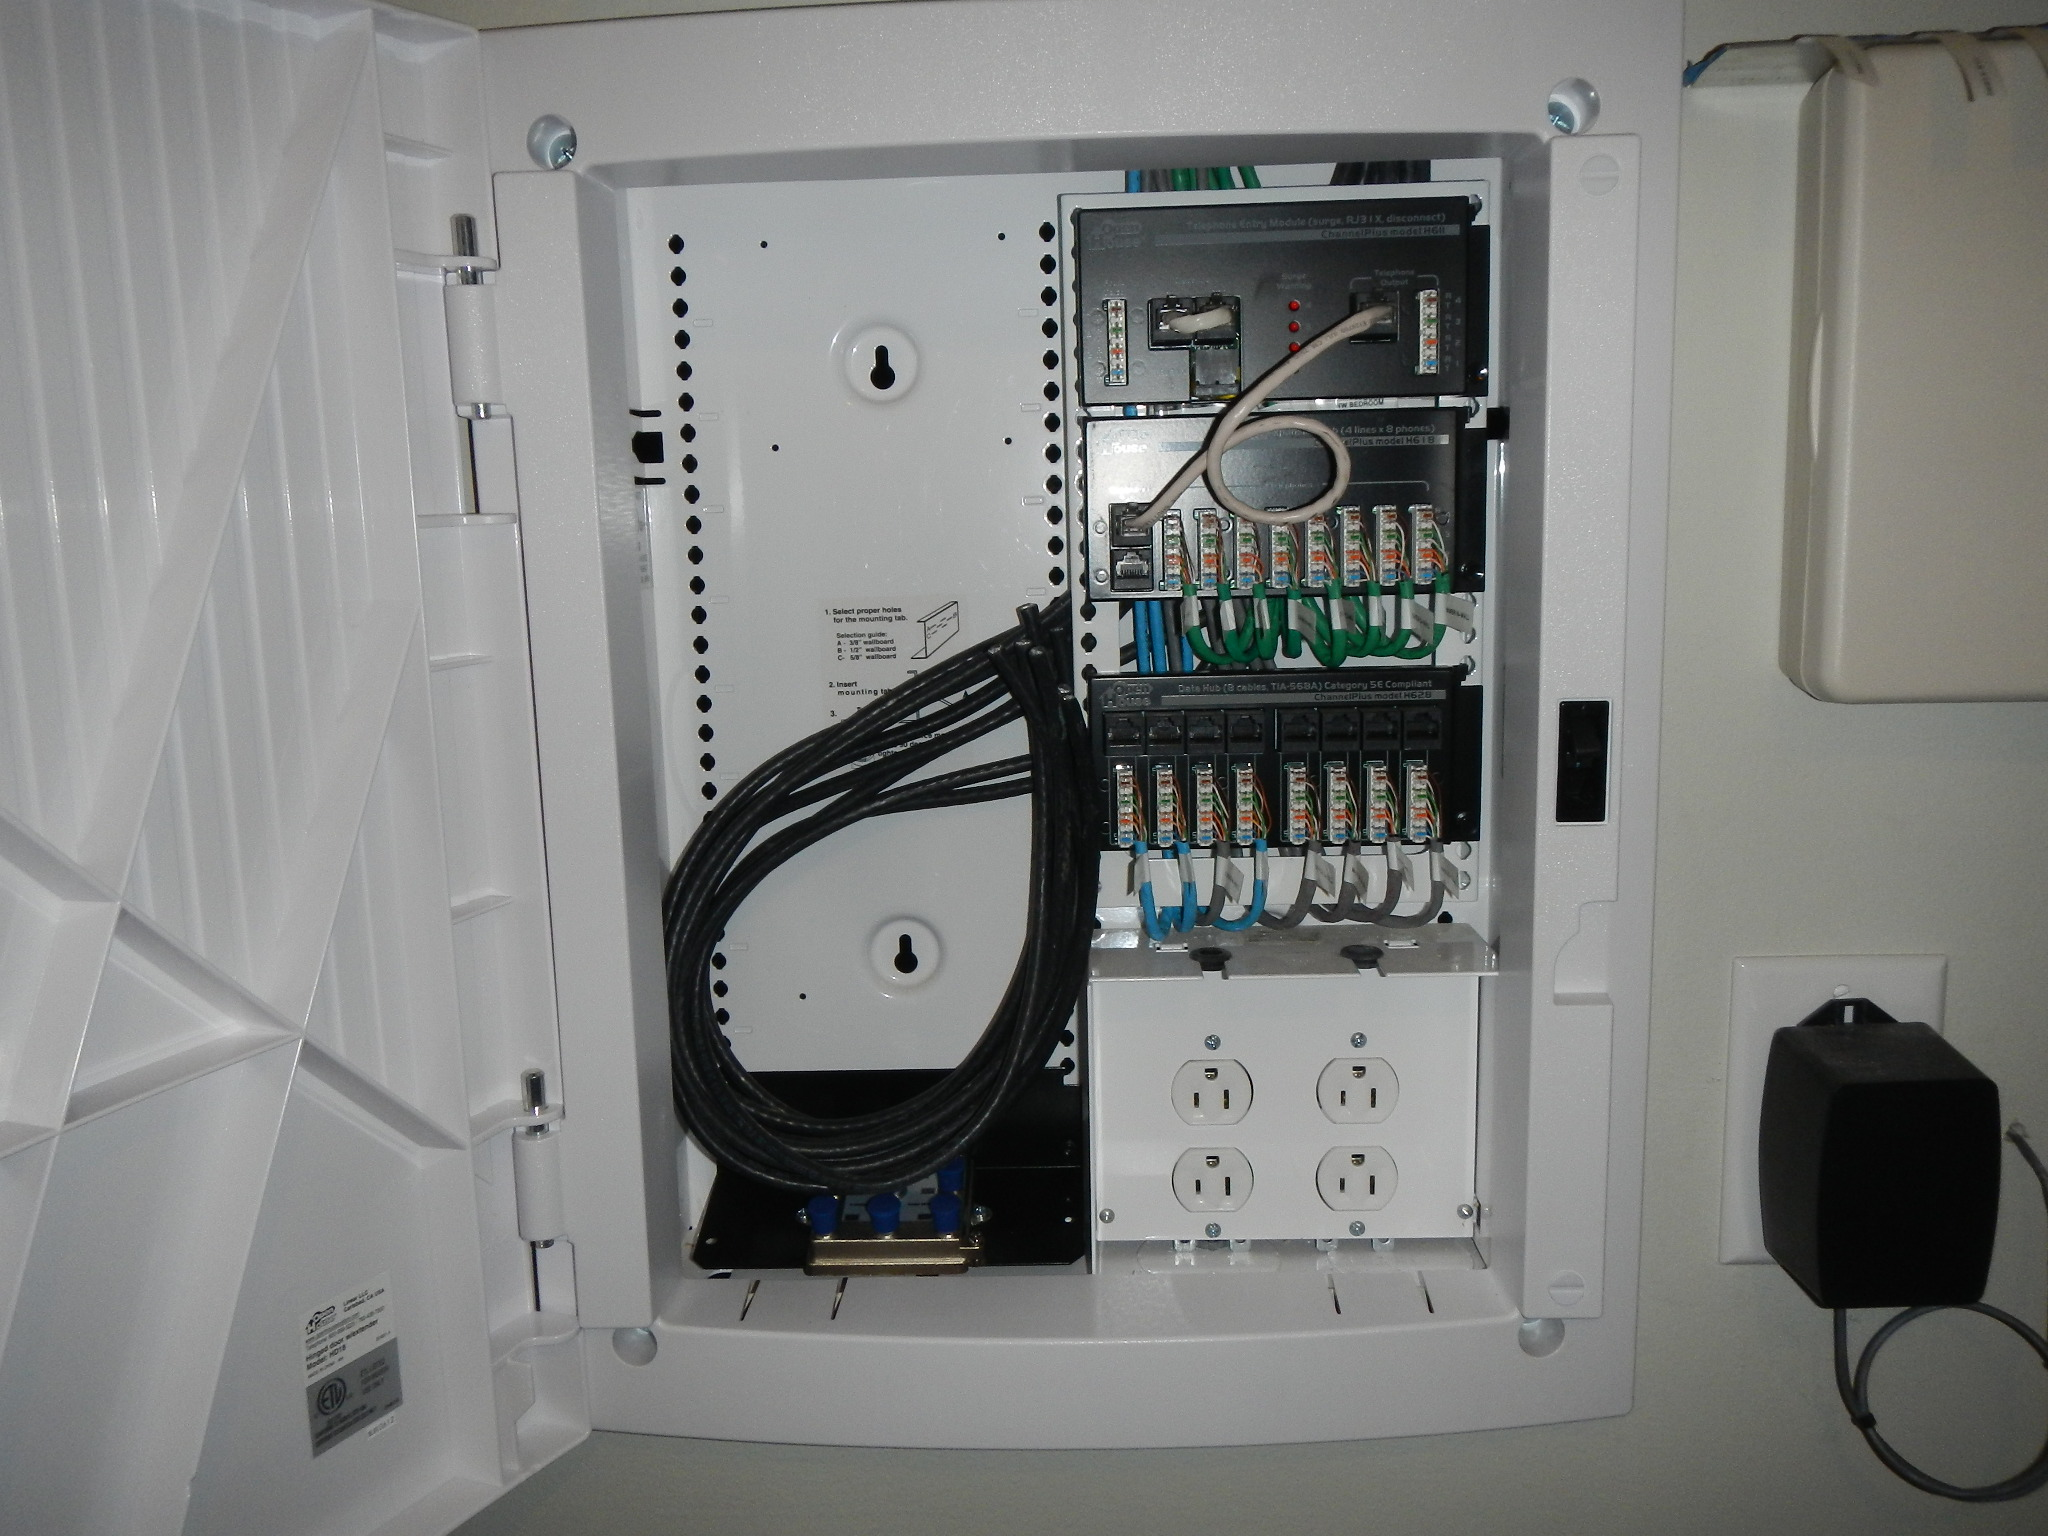 Wiring Enclosure Solutions Structured And Panels For Residential Homes Home Sys Requires 1gb 8 Port Router Or Switch W